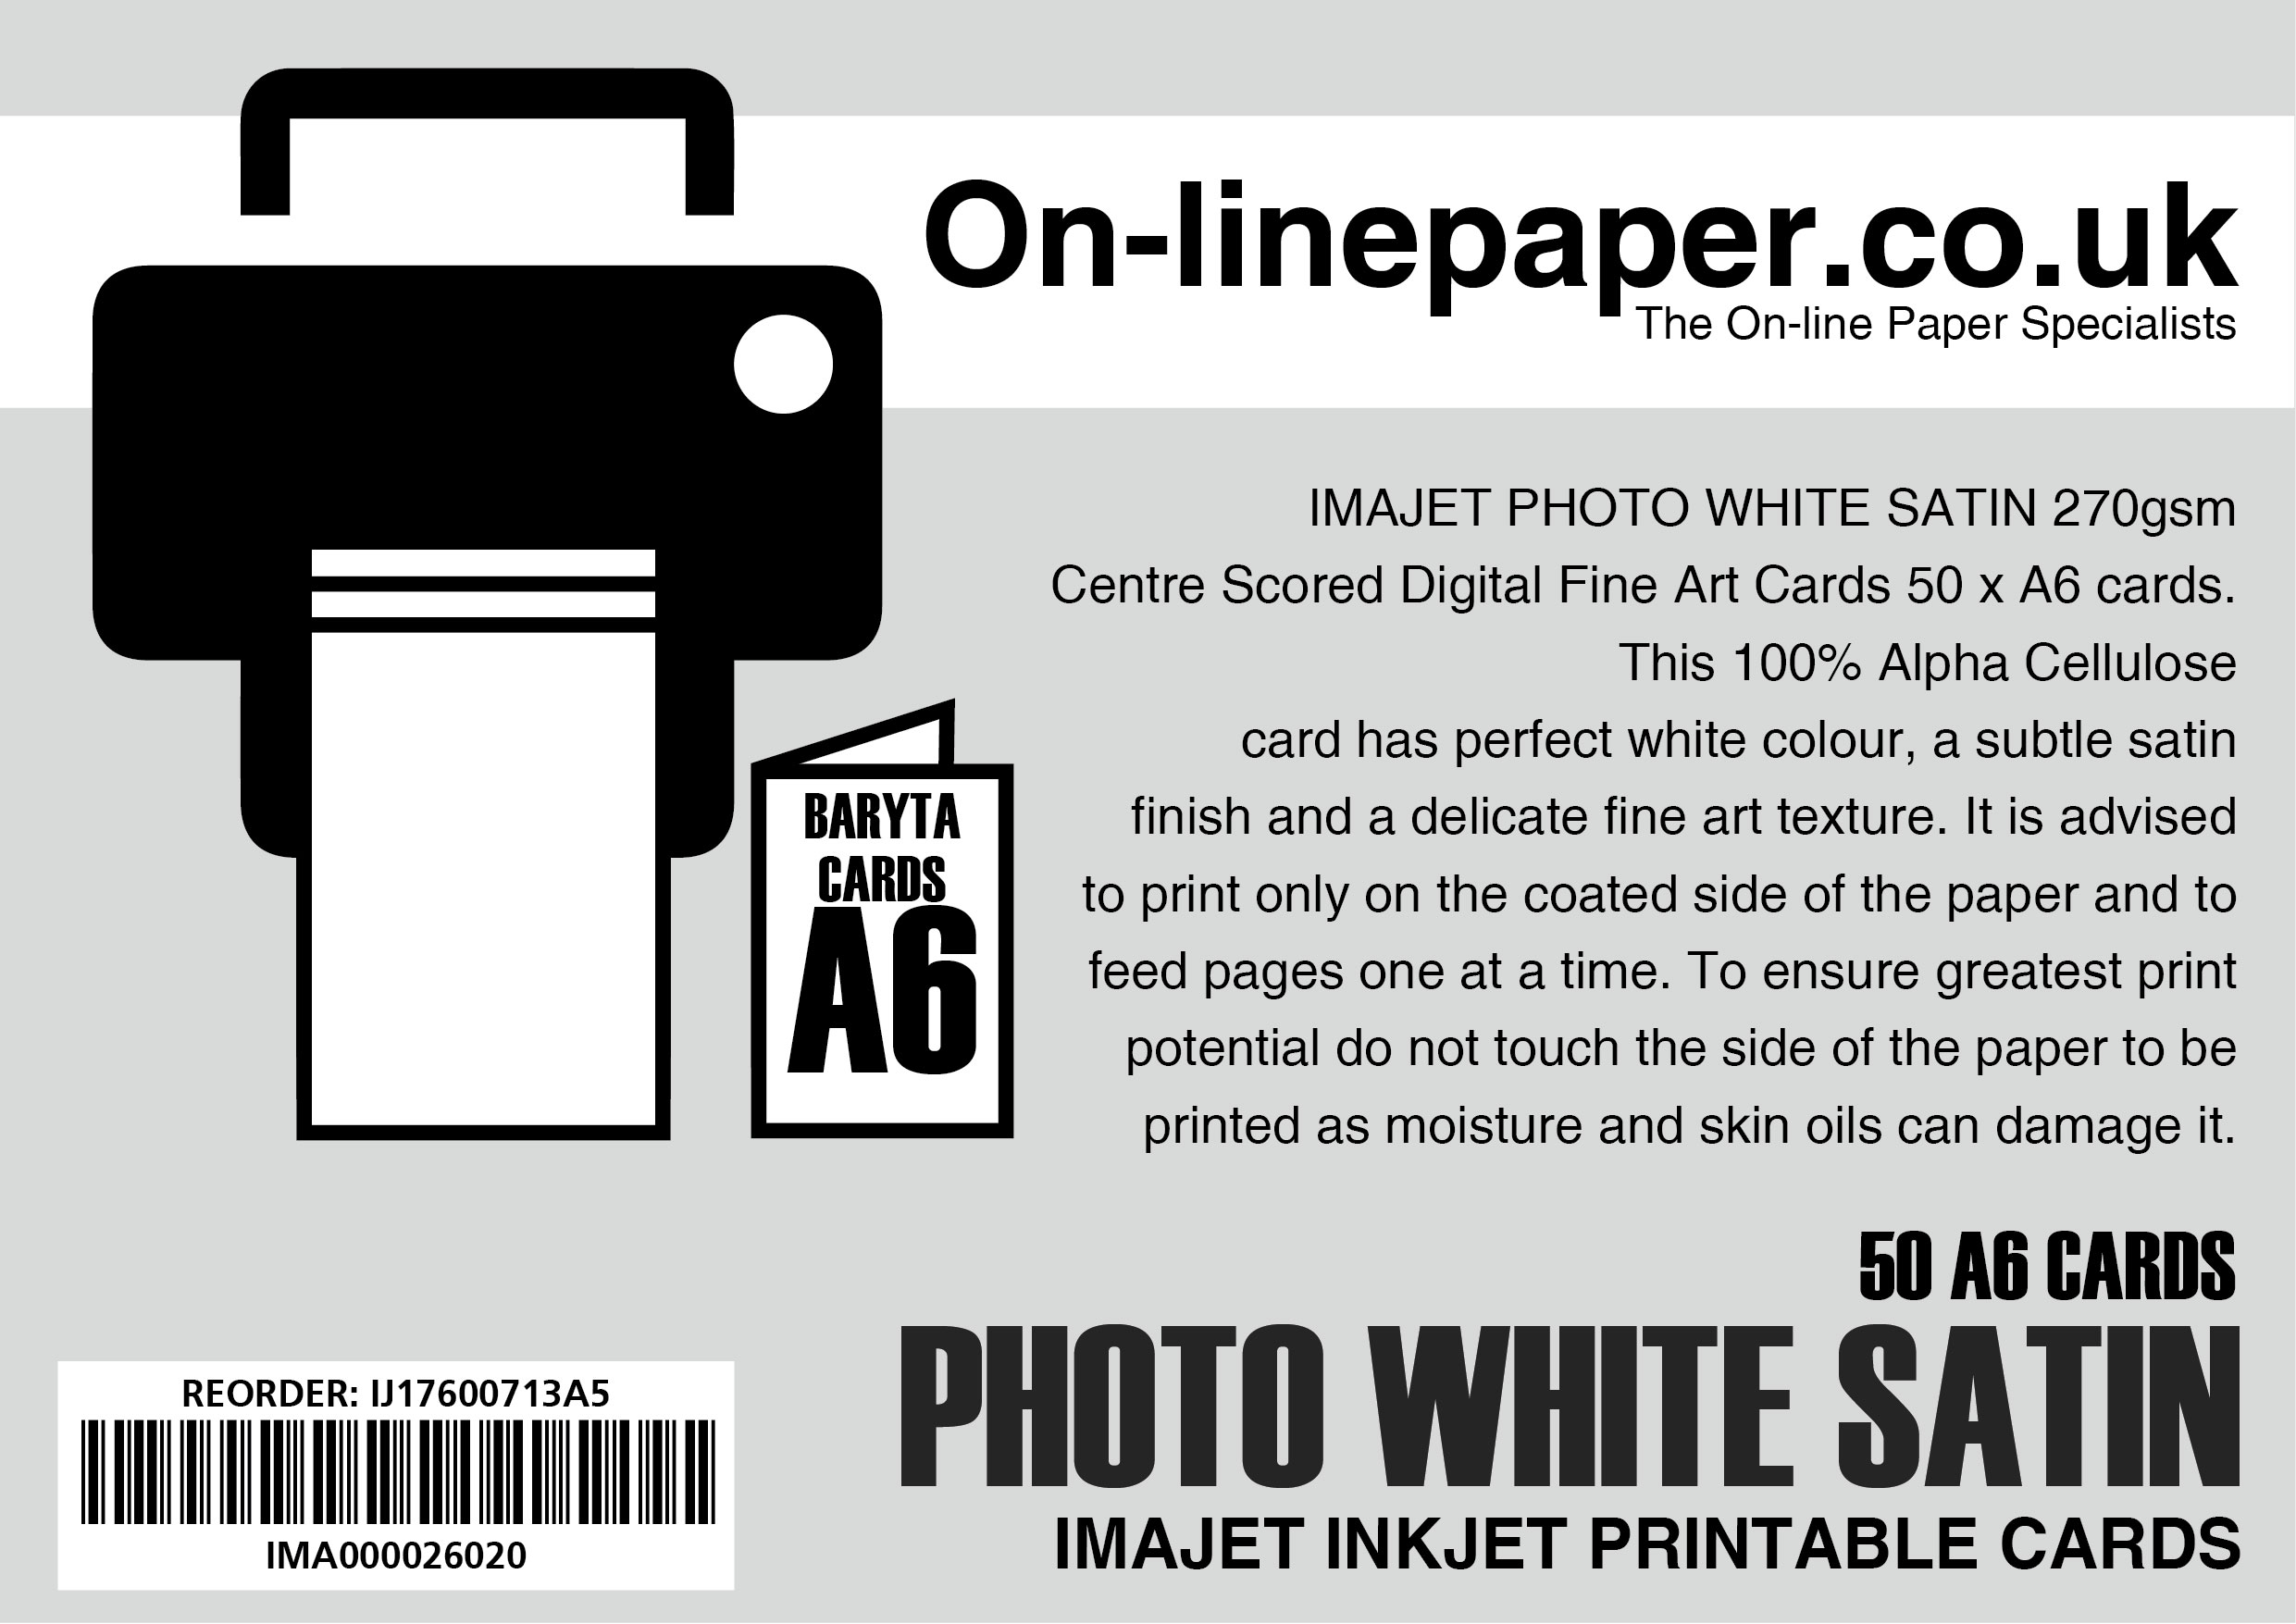 IMAJET PHOTO WHITE SATIN 270gsm Centre Scored Digital Fine Art Cards 50 x A5 cards --> A6